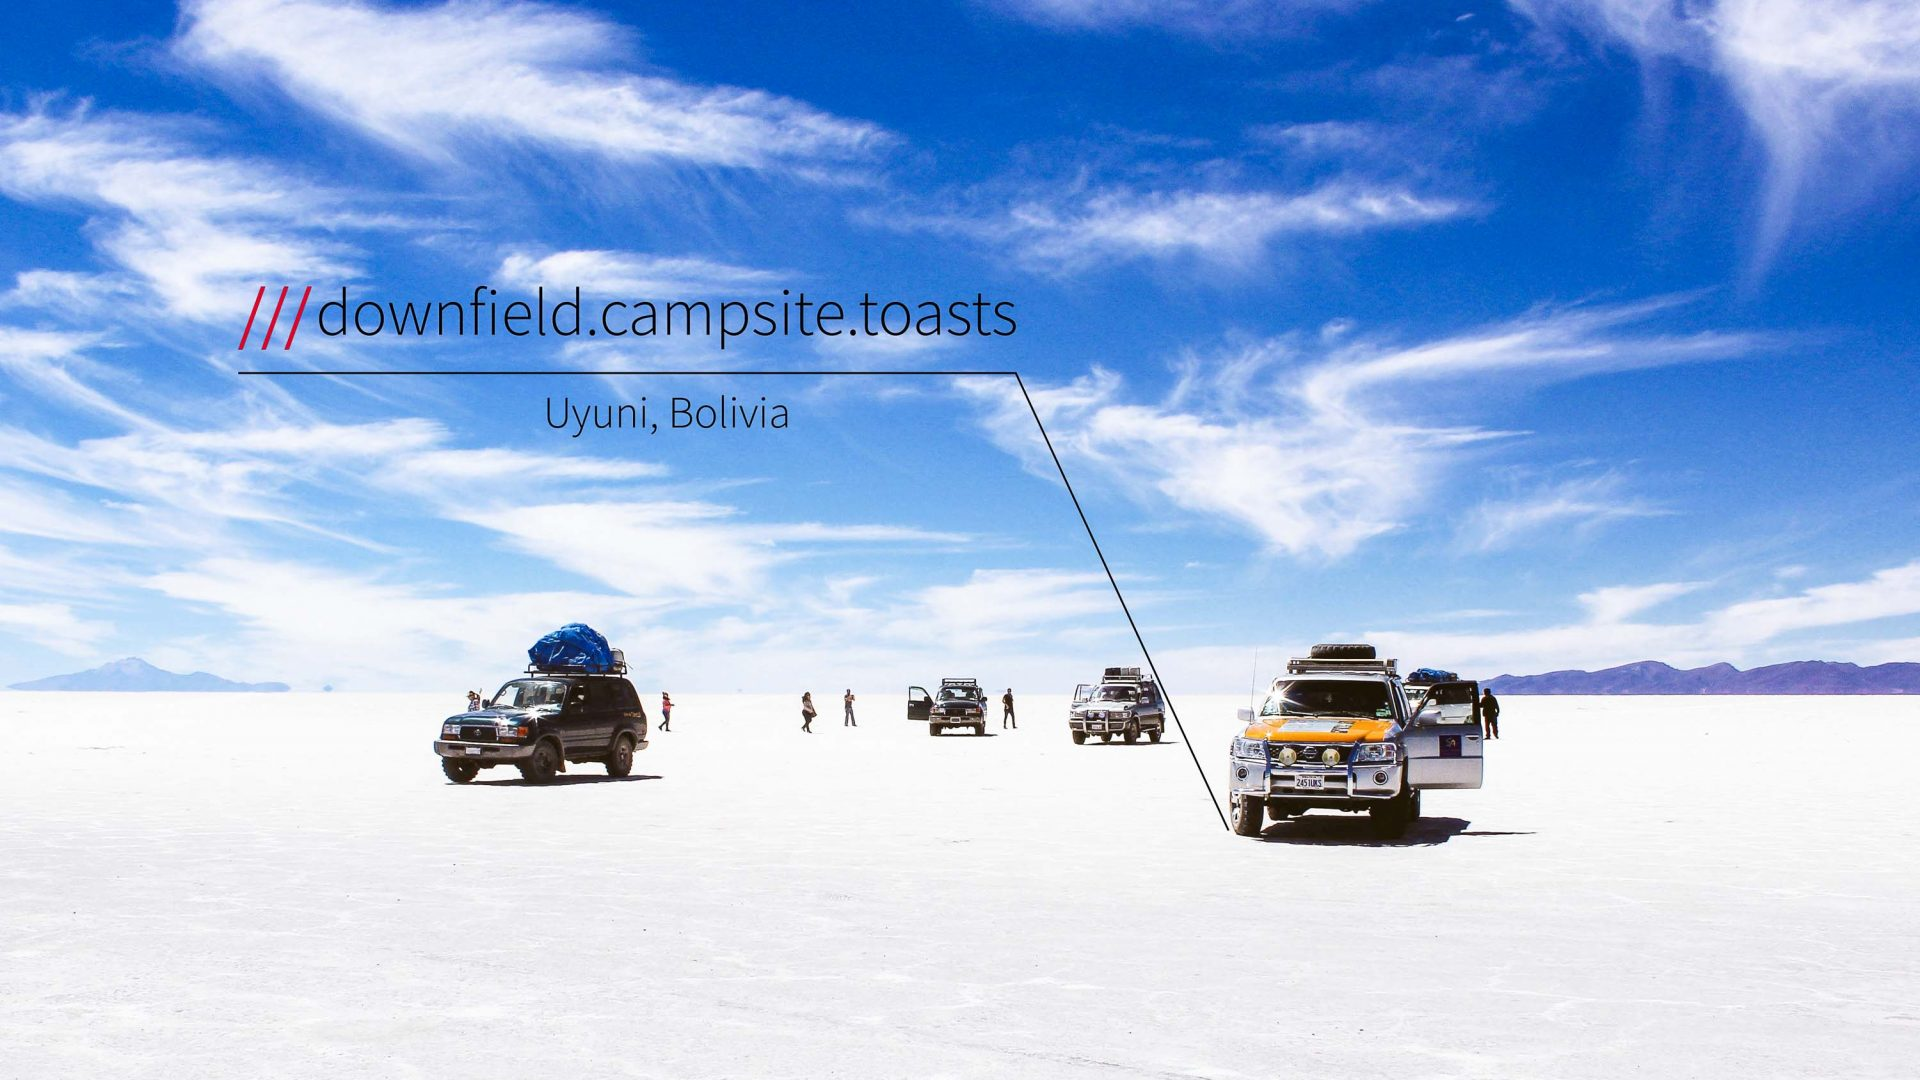 what3words is able to provide the address for these jeeps in the middle of Bolivia's salt plains.